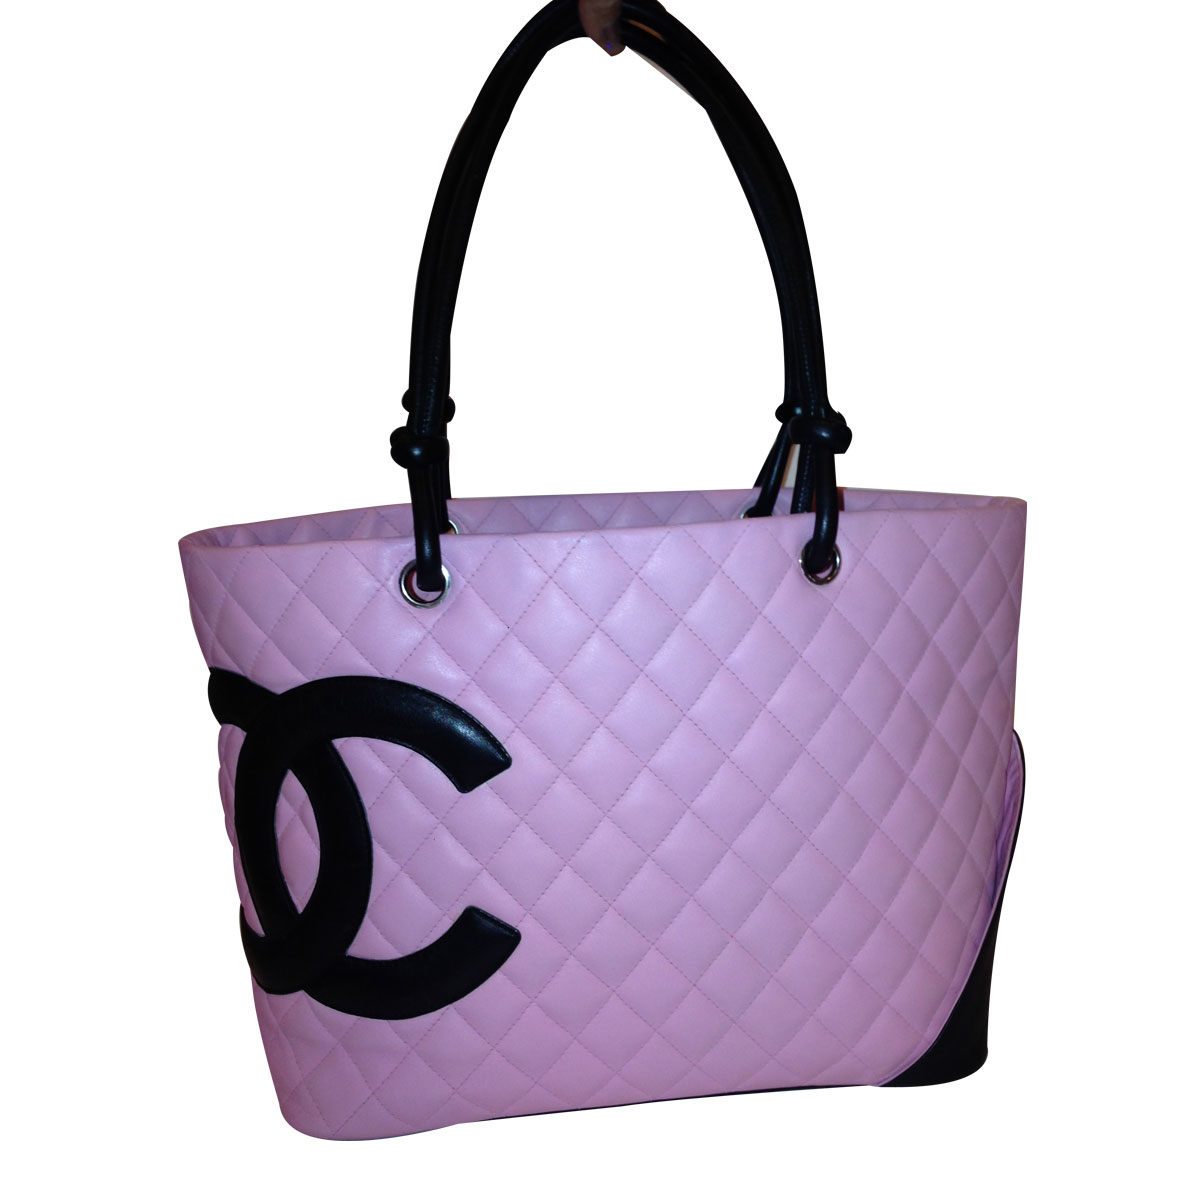 b9eb6d12b222 Over  1000 - Authentic Chanel Pink Cambon Large Leather Tote Bag